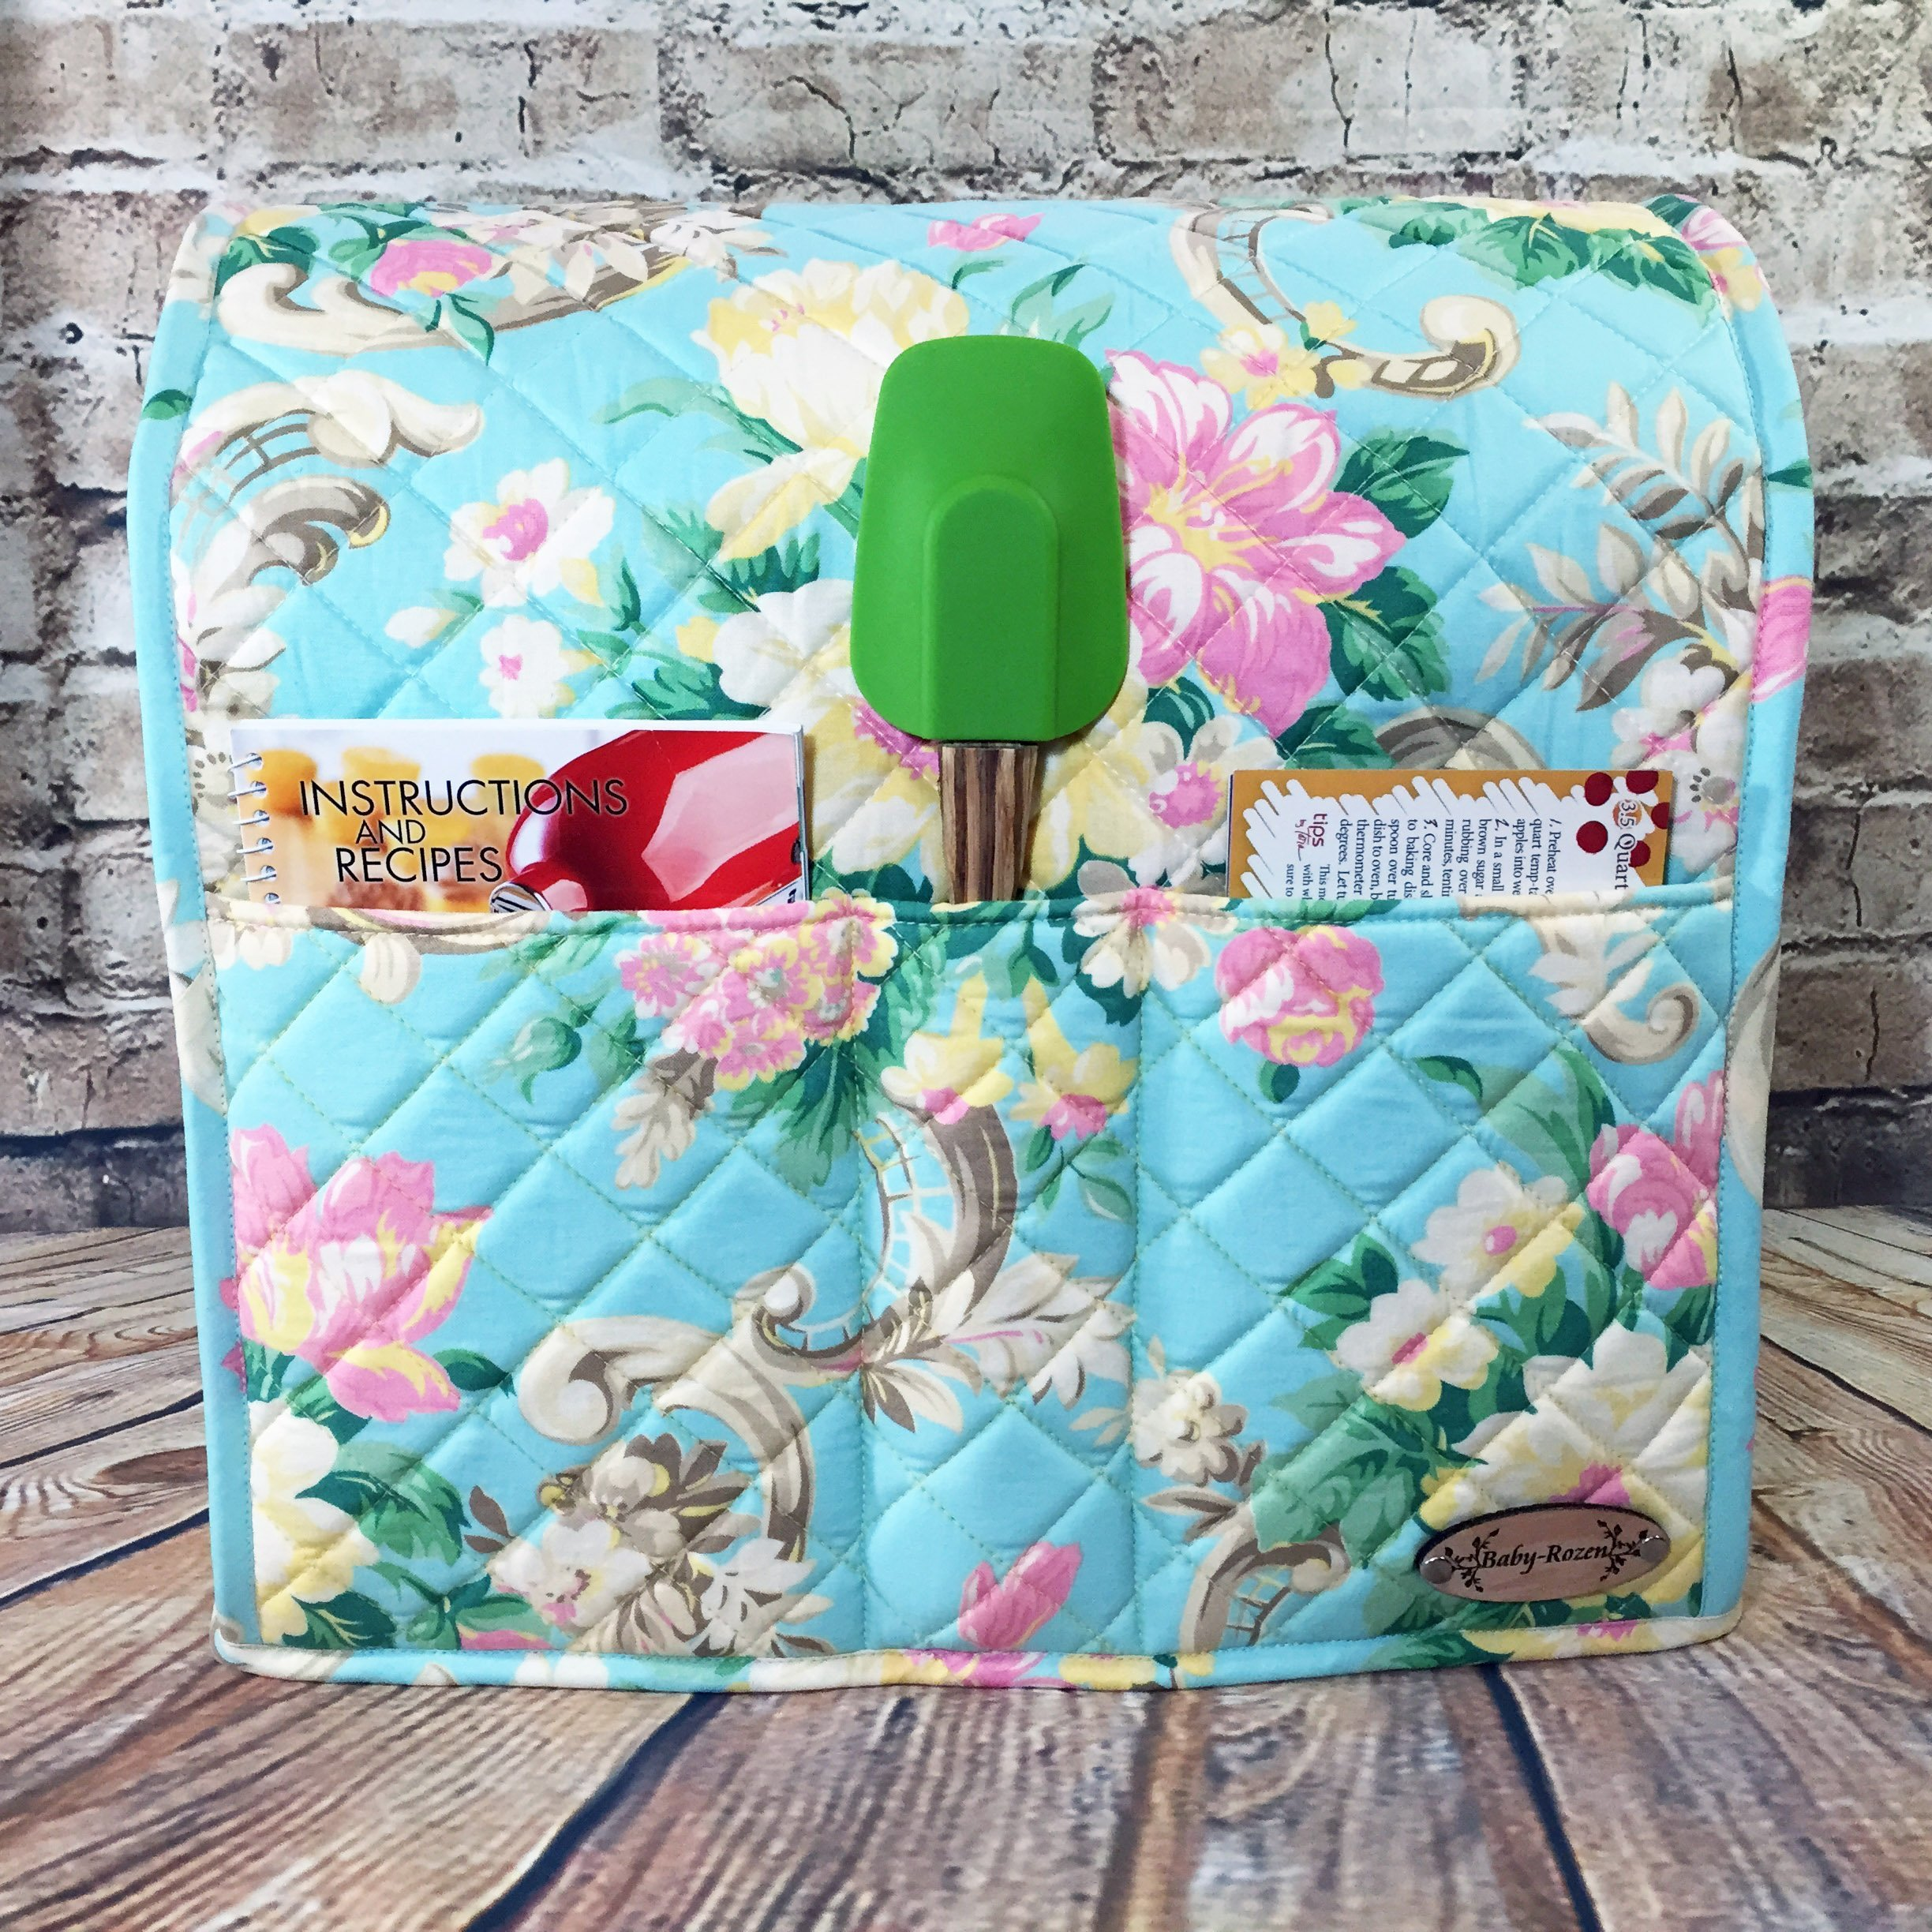 100% Cotton, Custom, Heirloom Quality, Quilted, Mixer Cover, Handcrafted to fit a 4.5 Qt. or 5 Qt. KitchenAid Tilt-Head Stand Mixer, Cozy, Made in Vermont by Baby Rozen Design (Image #2)